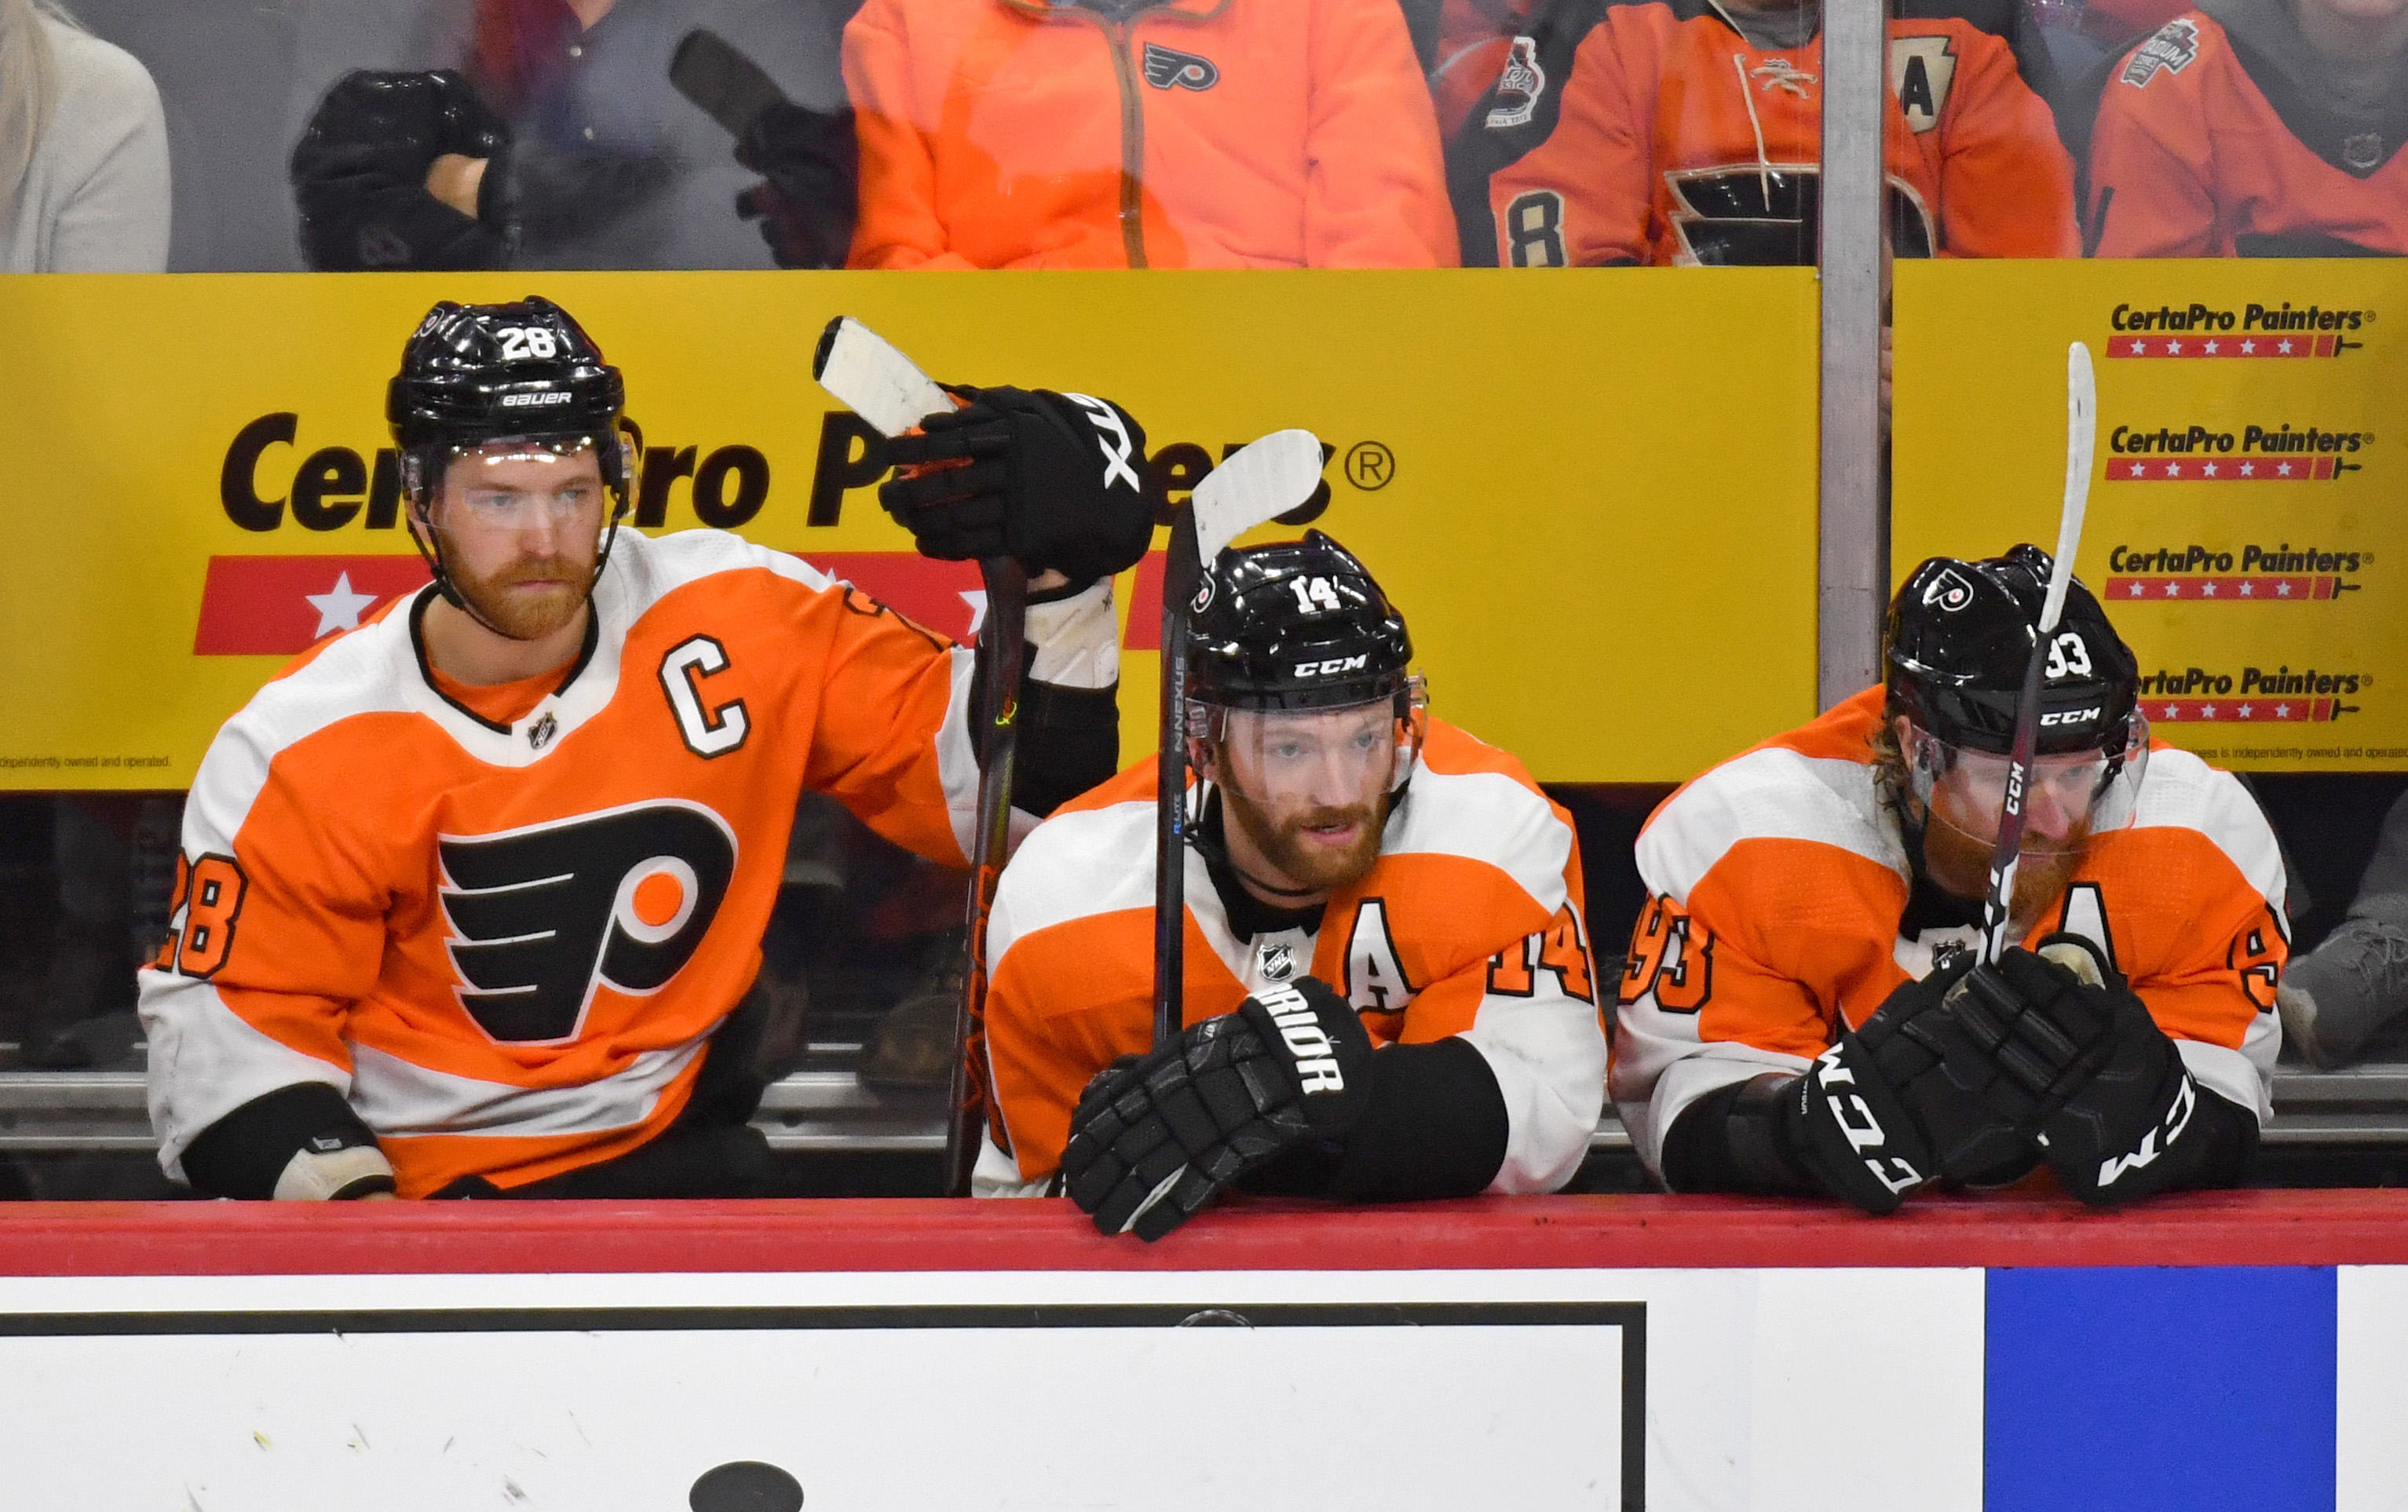 Philadelphia Flyers center Claude Giroux, center Sean Couturier and right wing Jakub Voracek on the bench late in the third period of win against the Columbus Blue Jackets at Wells Fargo Center.